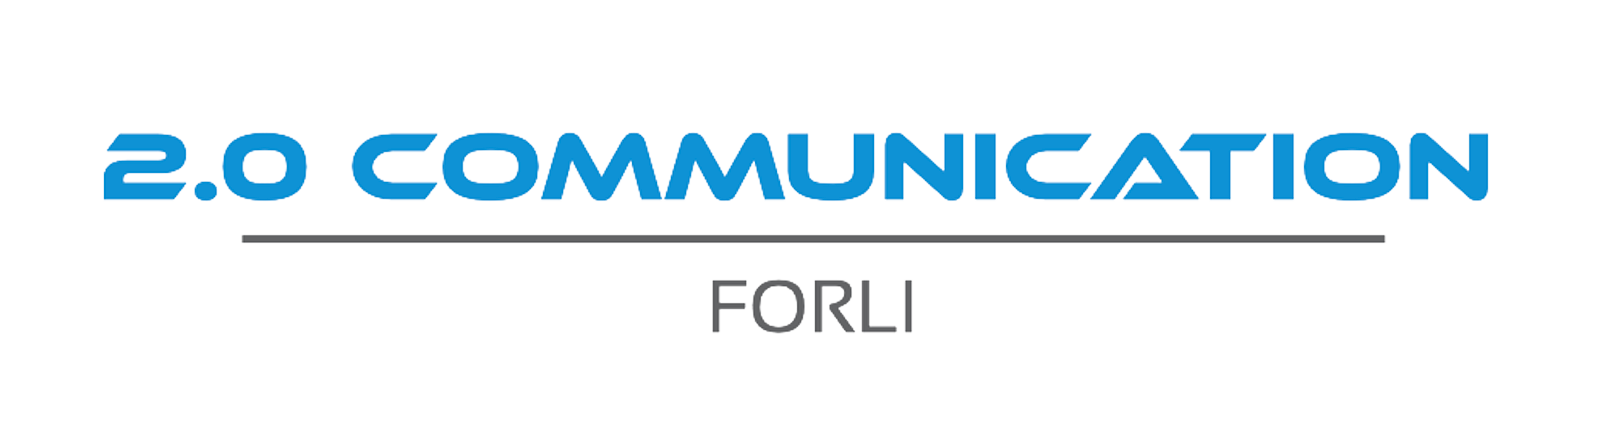 2.0 COMMUNICATION - Forlì